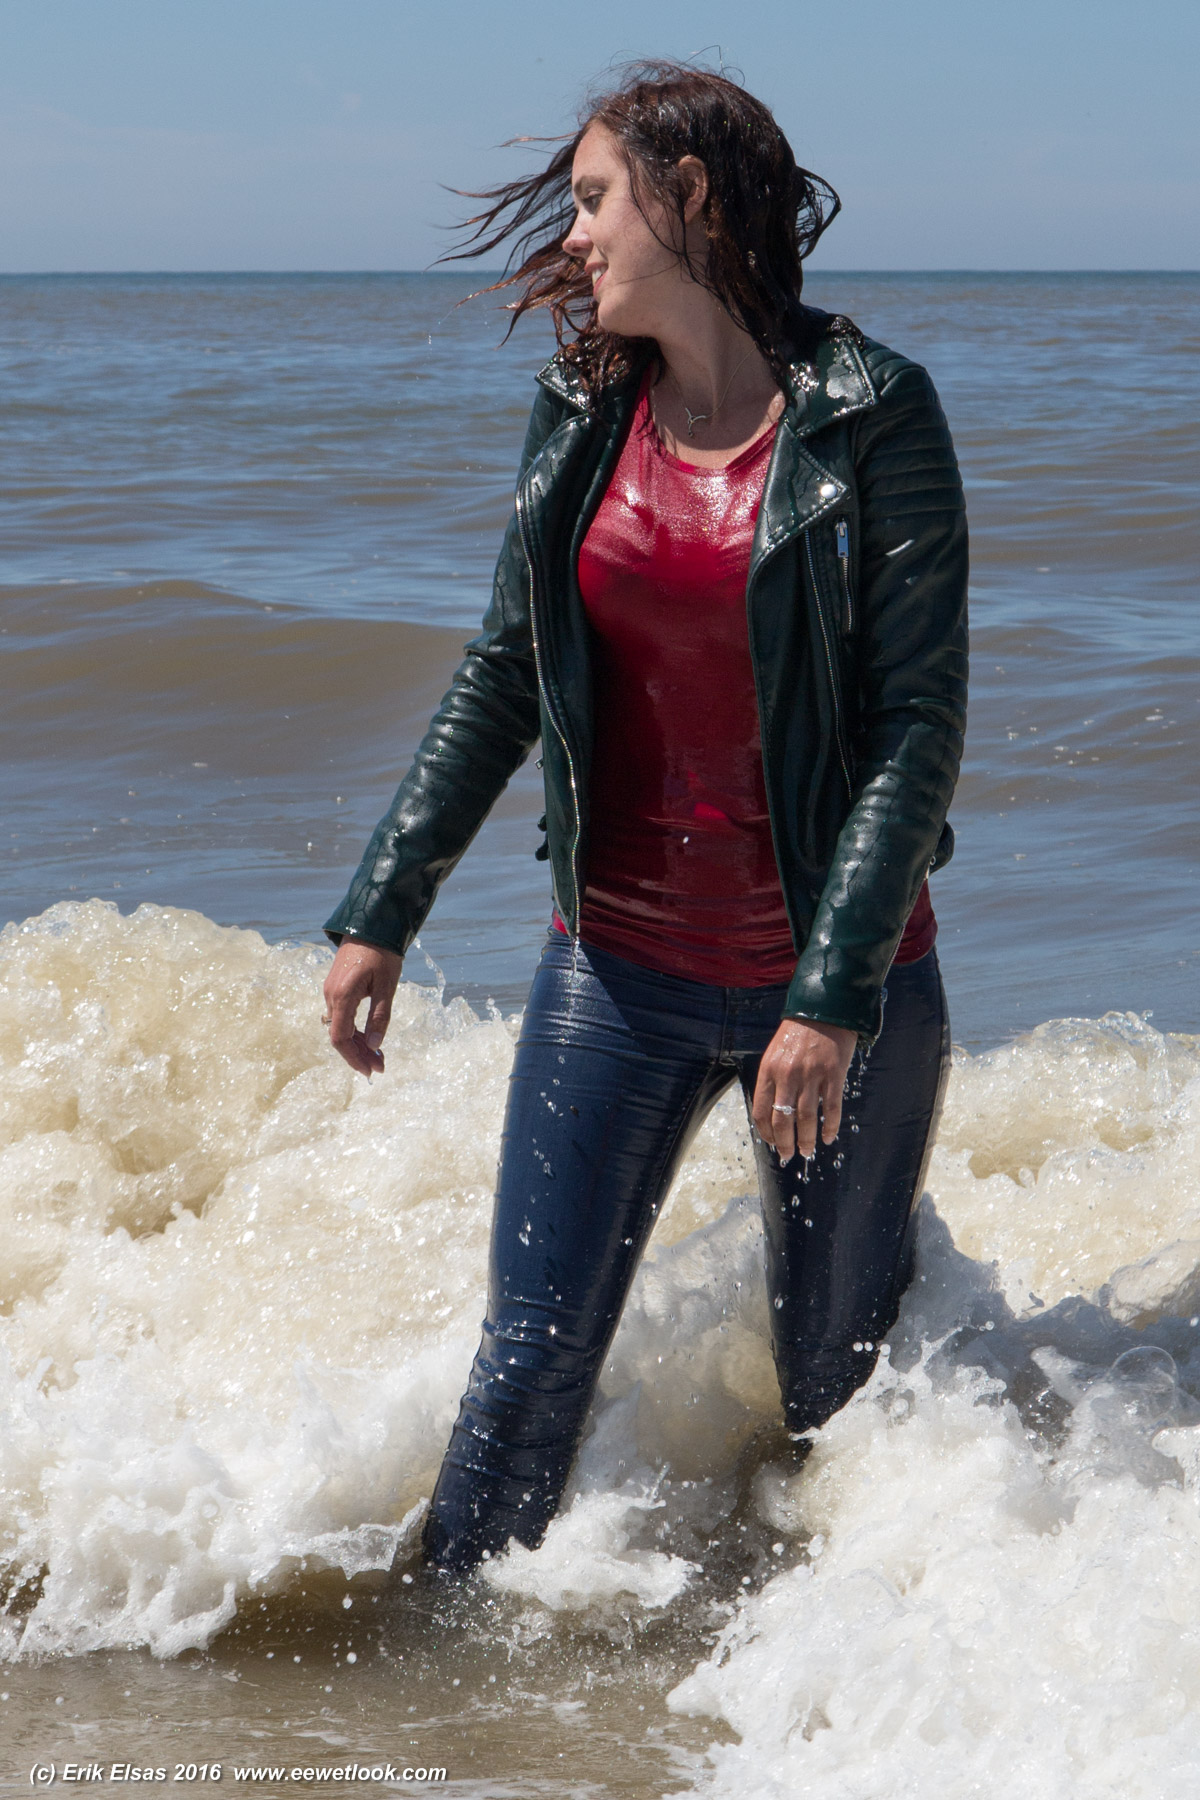 Can leather jackets get wet